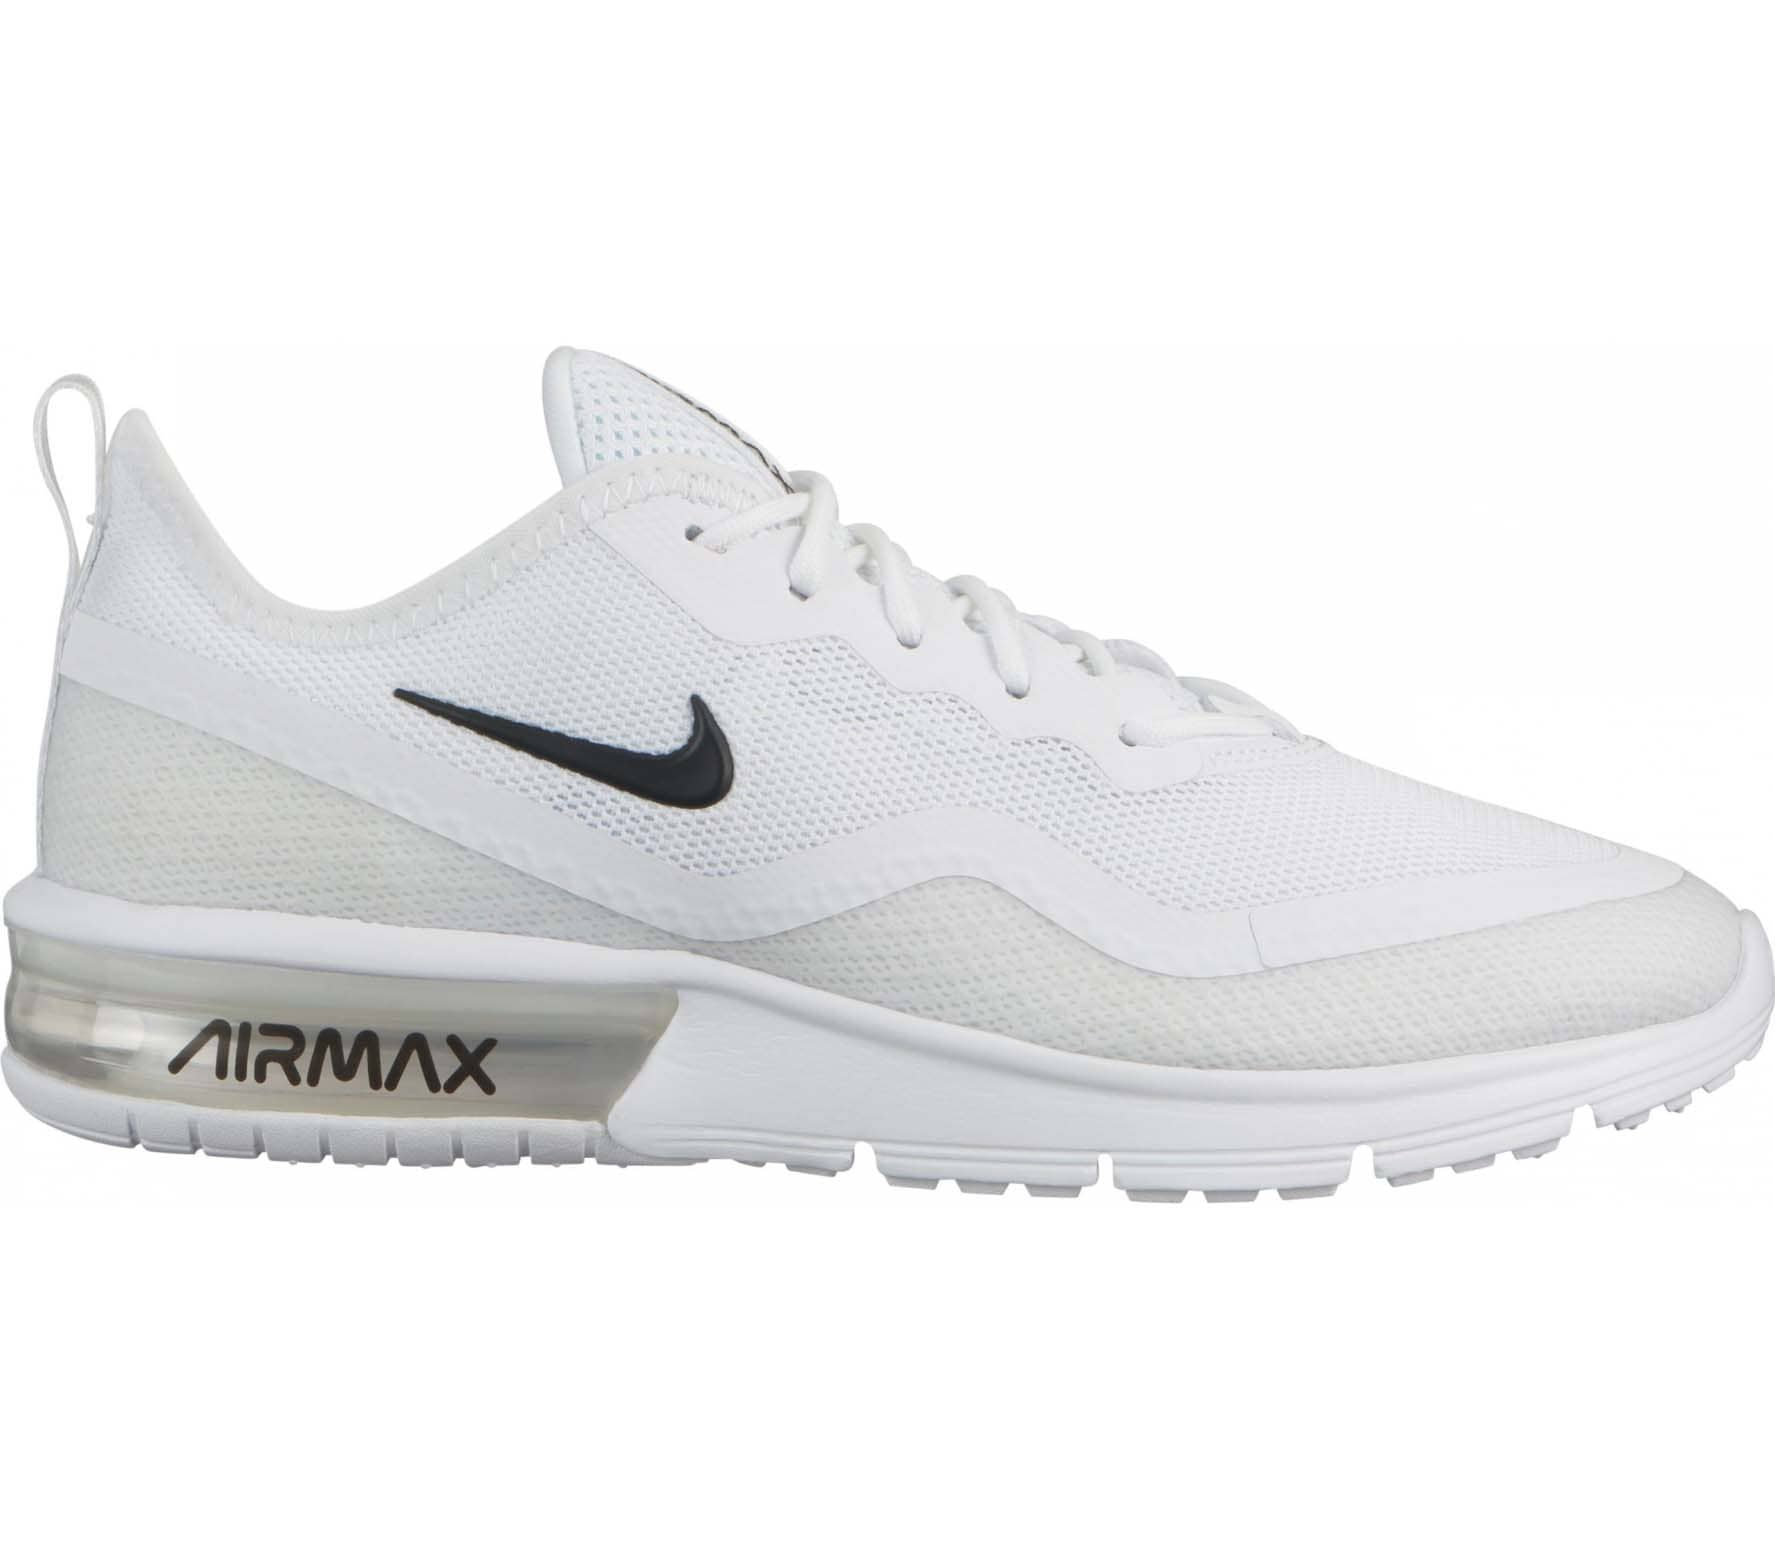 4d96d0110ed Nike Air Max Sequent 4.5 women's sneaker Dames online kopen in de ...